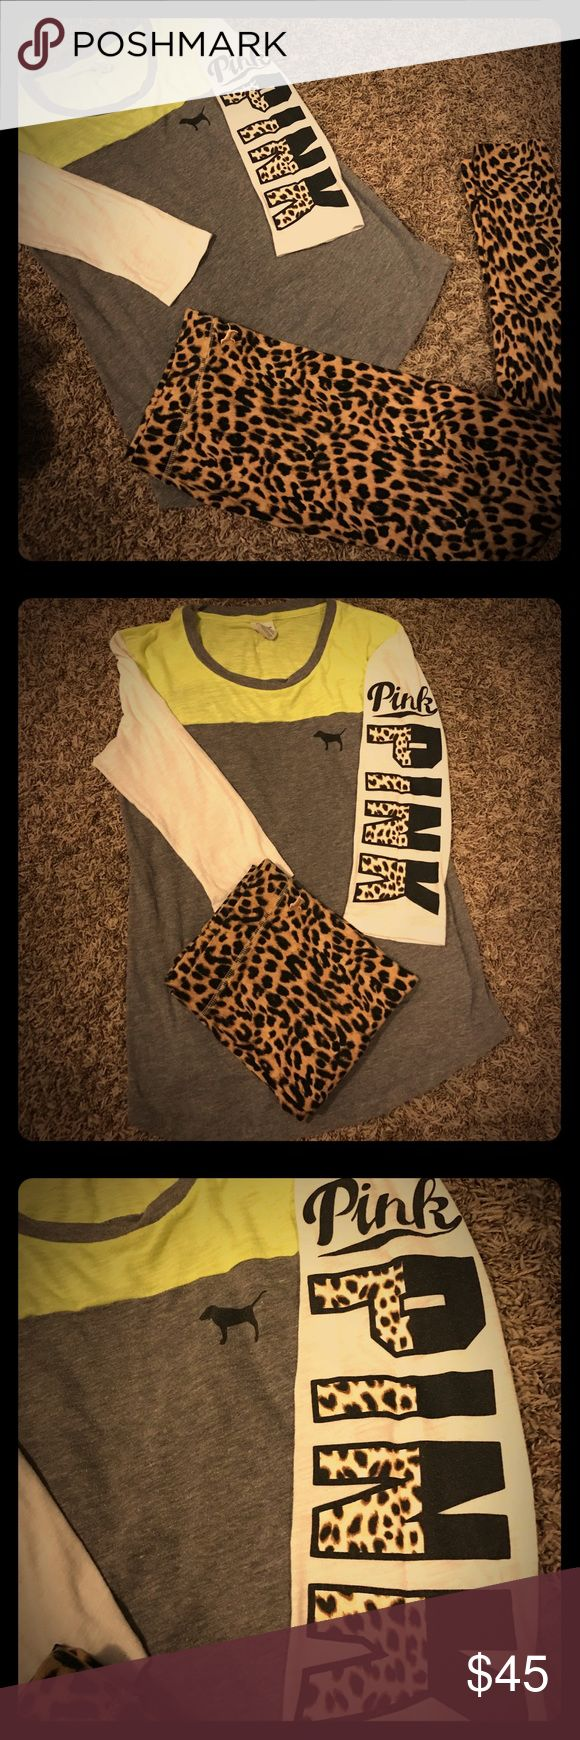 Vs pink cheetah outfit bundle😘 Cheetah leggings and half sleeved with neon yellow and pink cheetah on the sleeve going down EUC shirt with no flaws. leggings NWOT. No flaws unused UFT as well as selling. PINK Victoria's Secret Pants Leggings